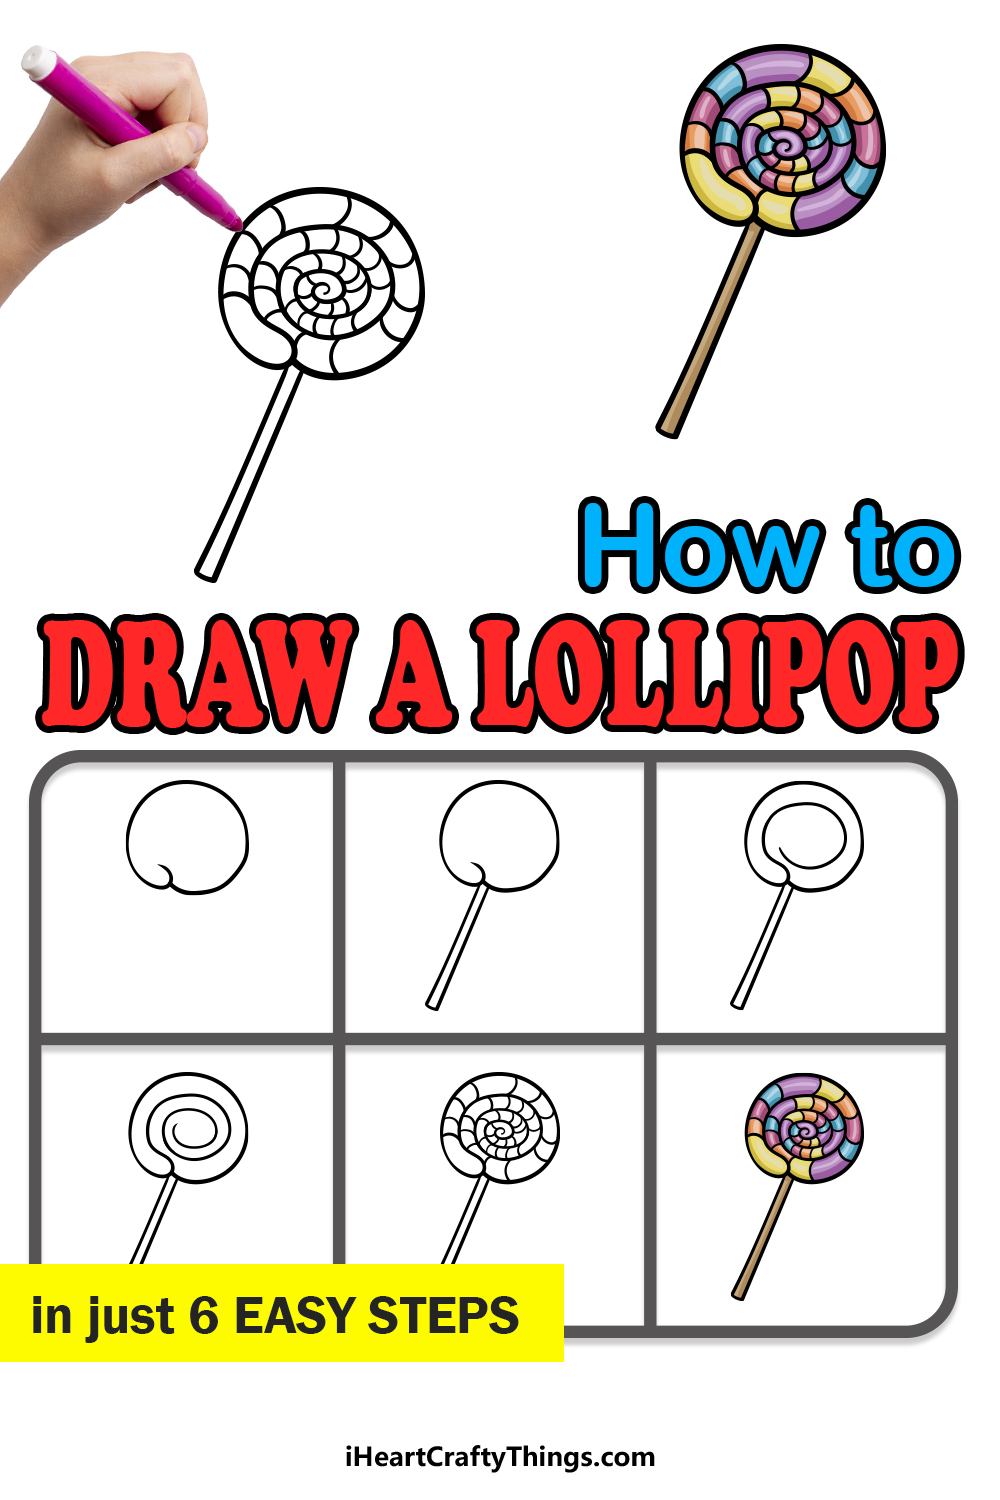 how to draw a lollipop in 6 easy steps